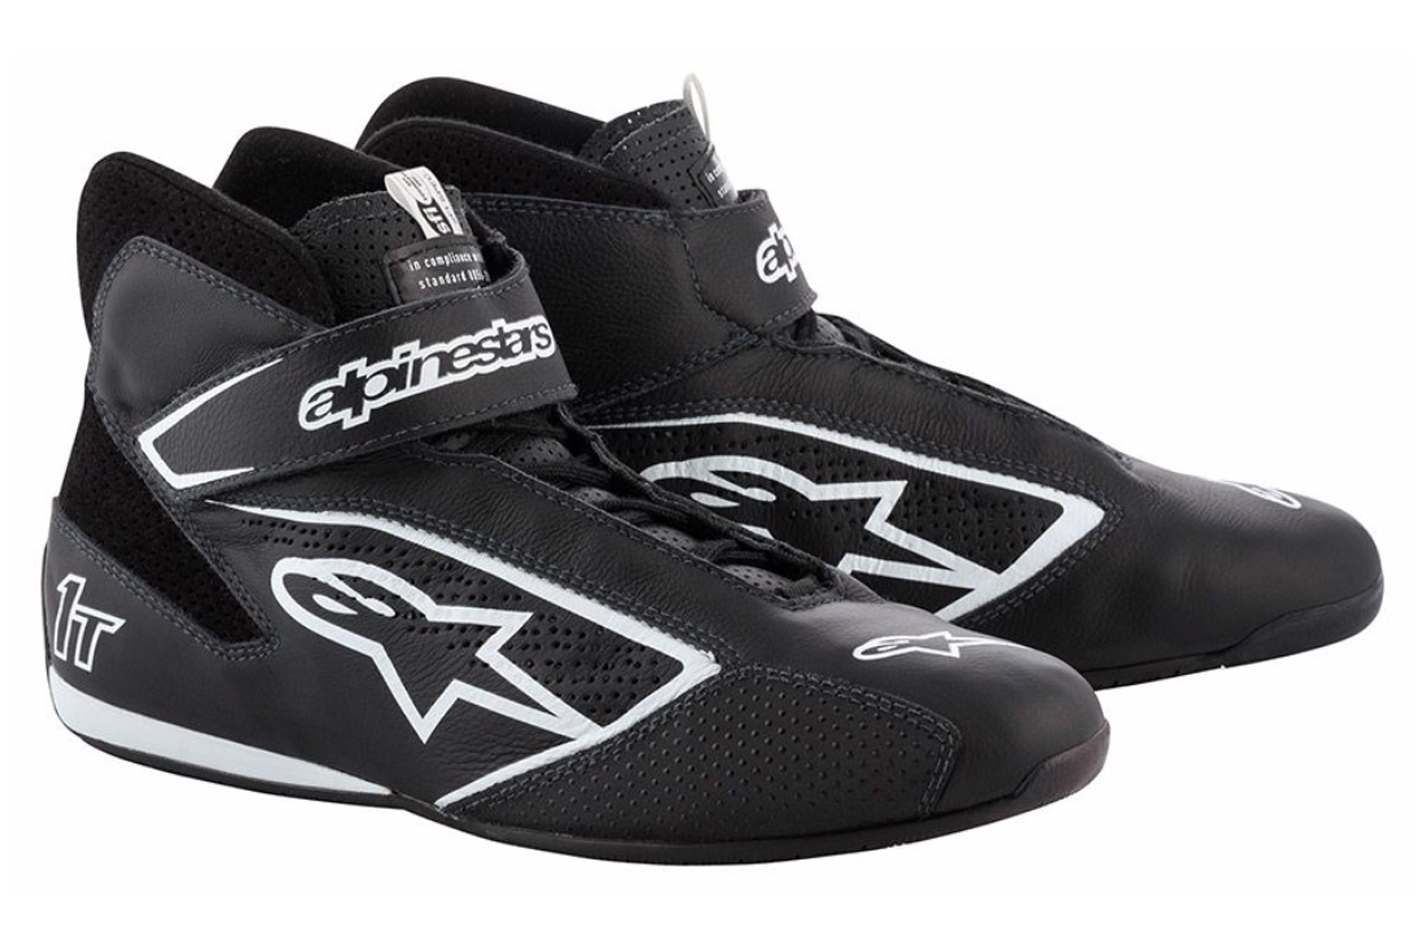 Alpinestars USA 2710119-12B-10 Shoe, Tech 1-T, Driving, Mid-Top, SFI 3.3, FIA Approved, Leather Outer, Nomex Inner, Black, Size 10, Pair